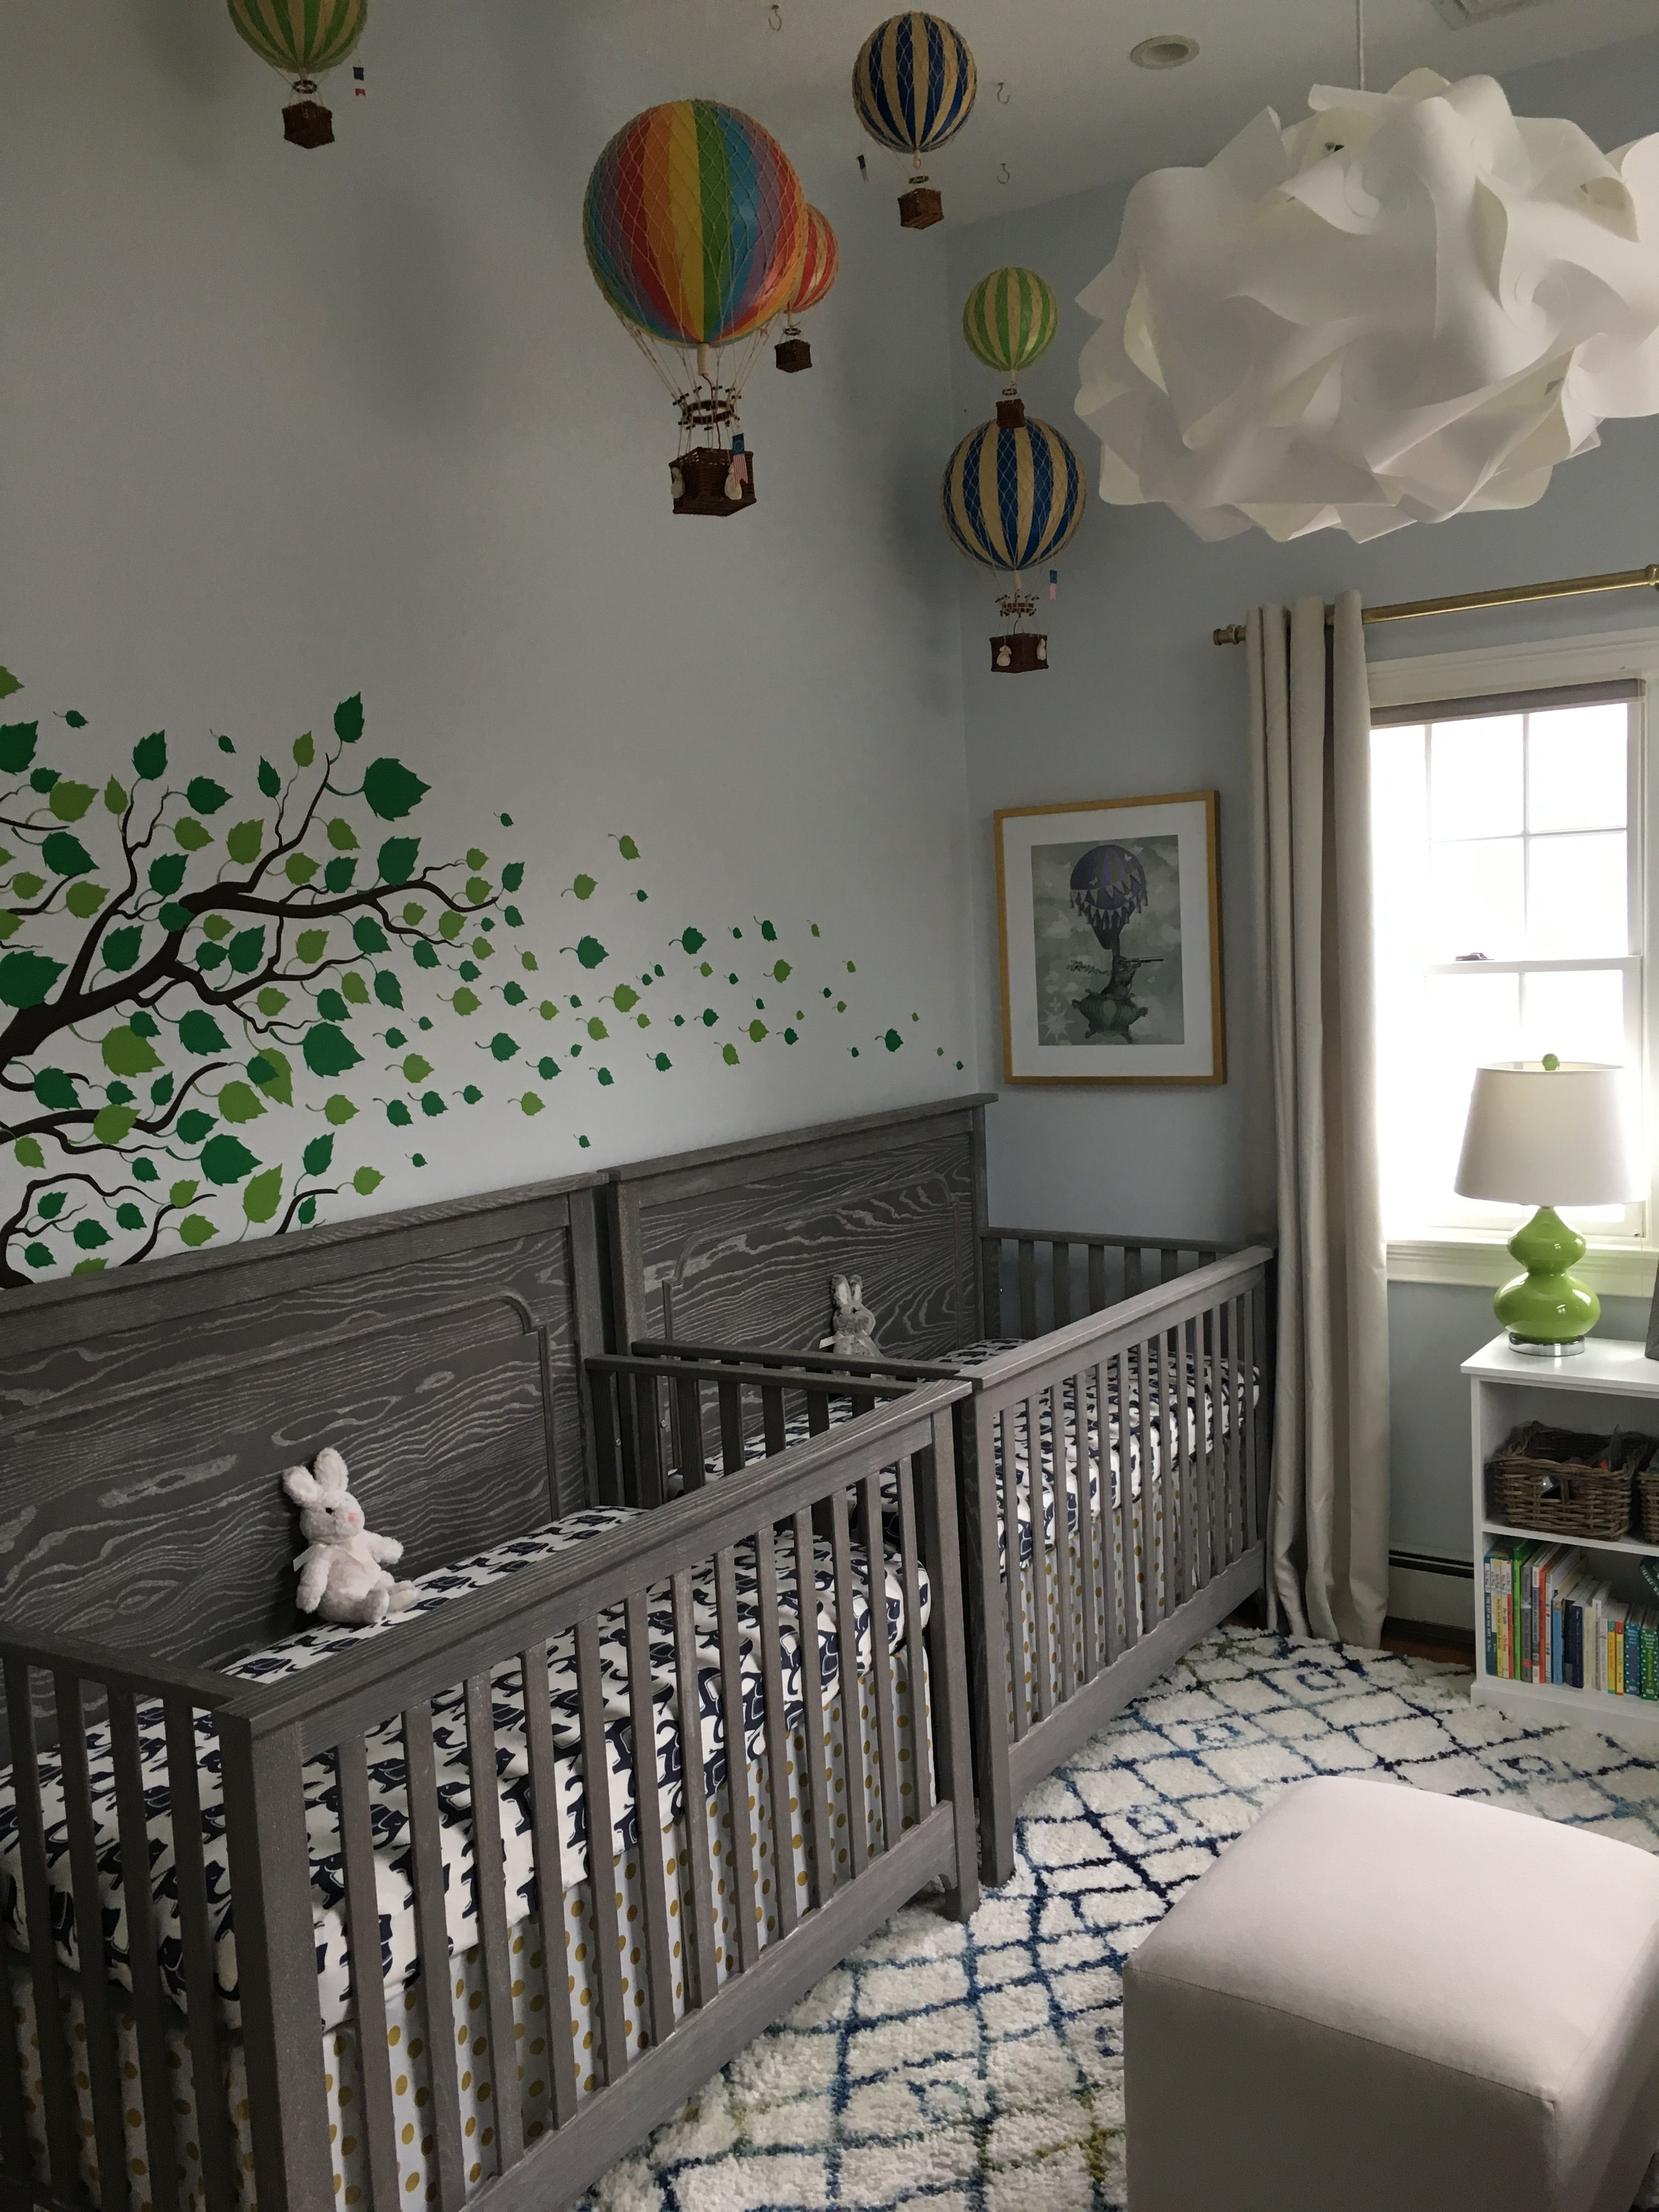 101 Adorable Ideas for a Gender Neutral Nursery | Twin baby ...